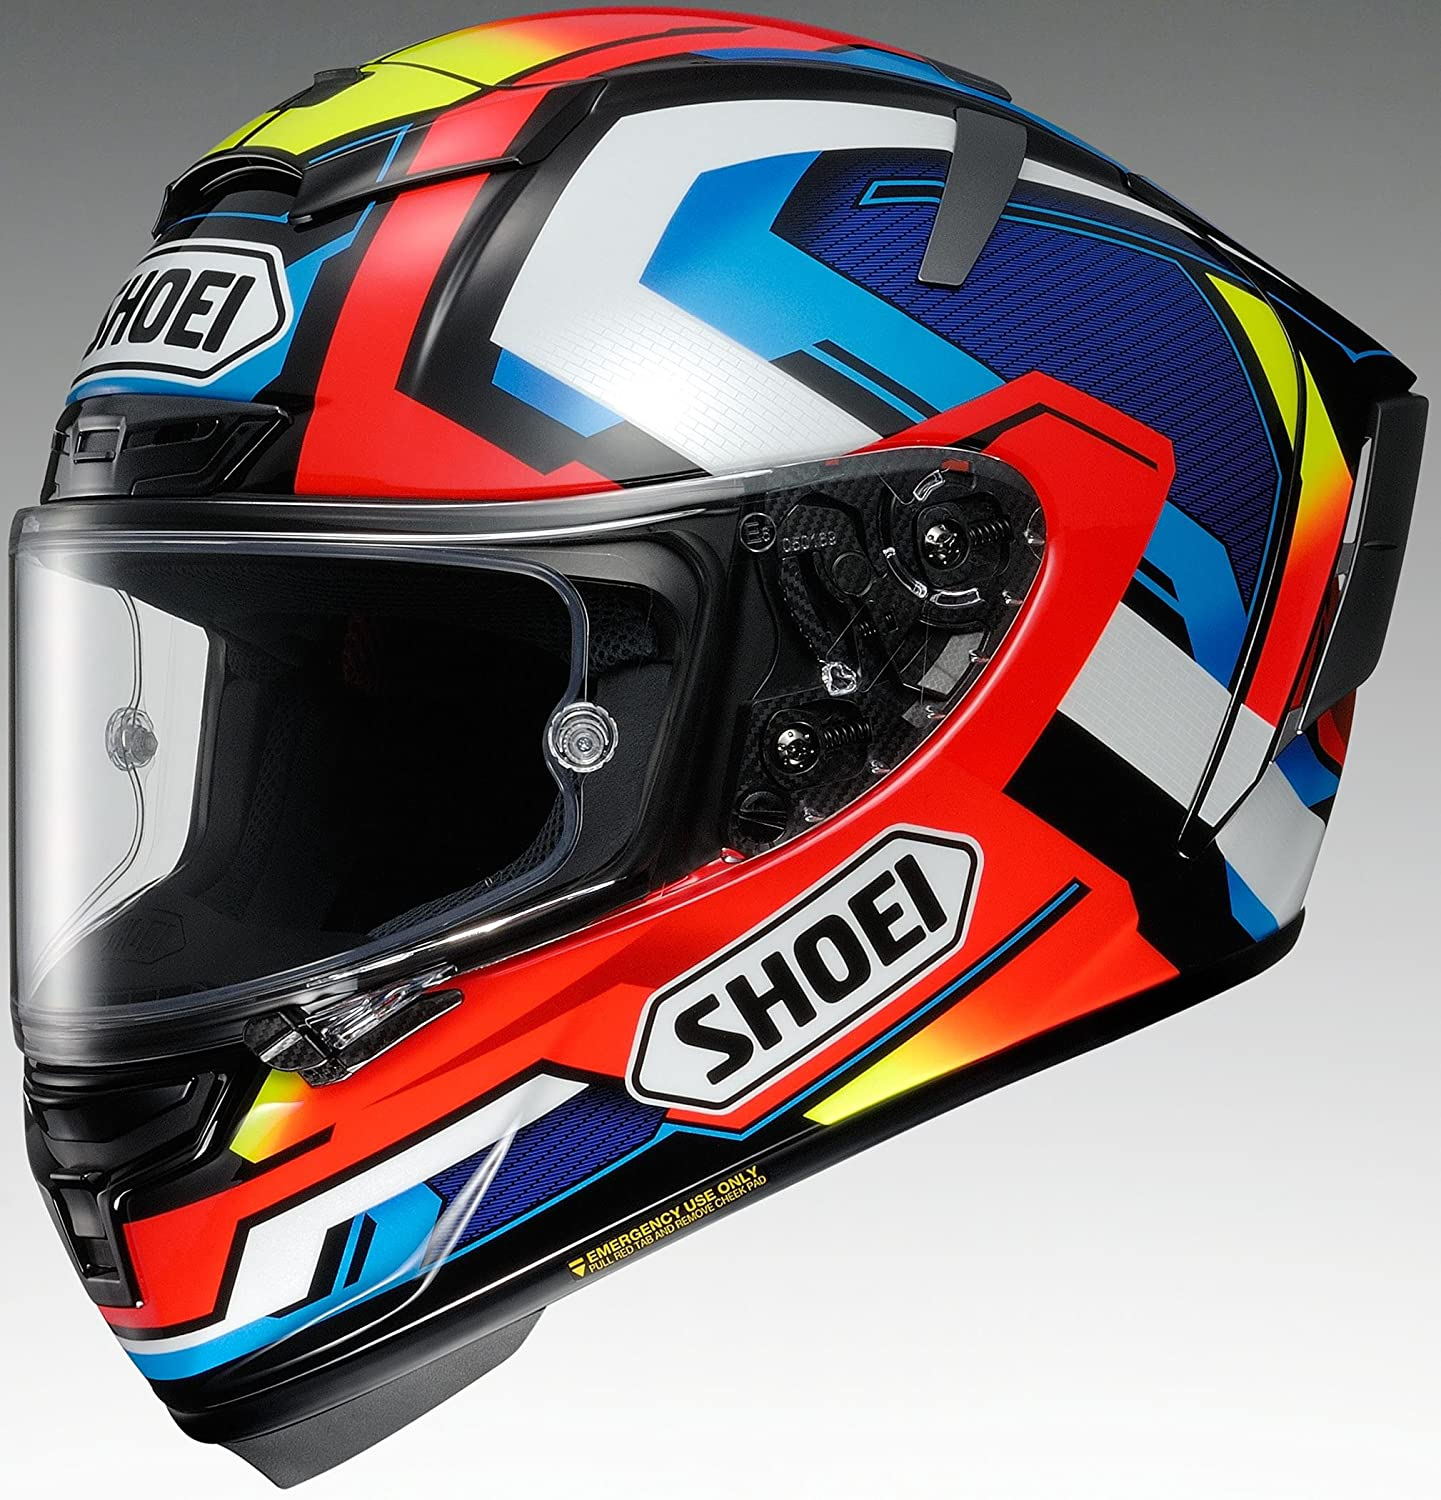 Amazon.com: Shoei X-14 Brink Sports Bike Racing Motorcycle Helmet - TC-10/Medium: Automotive